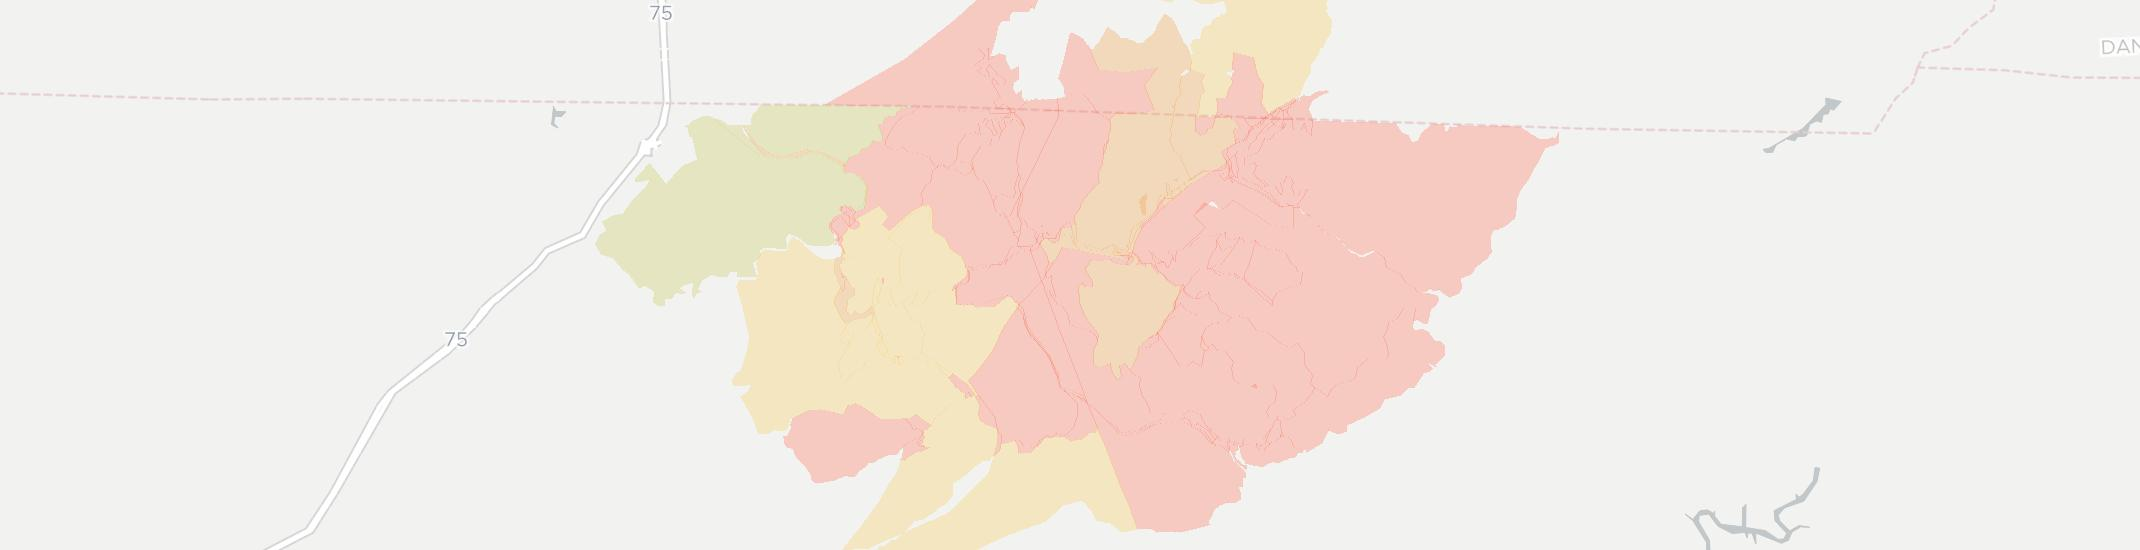 Clairfield Internet Competition Map. Click for interactive map.